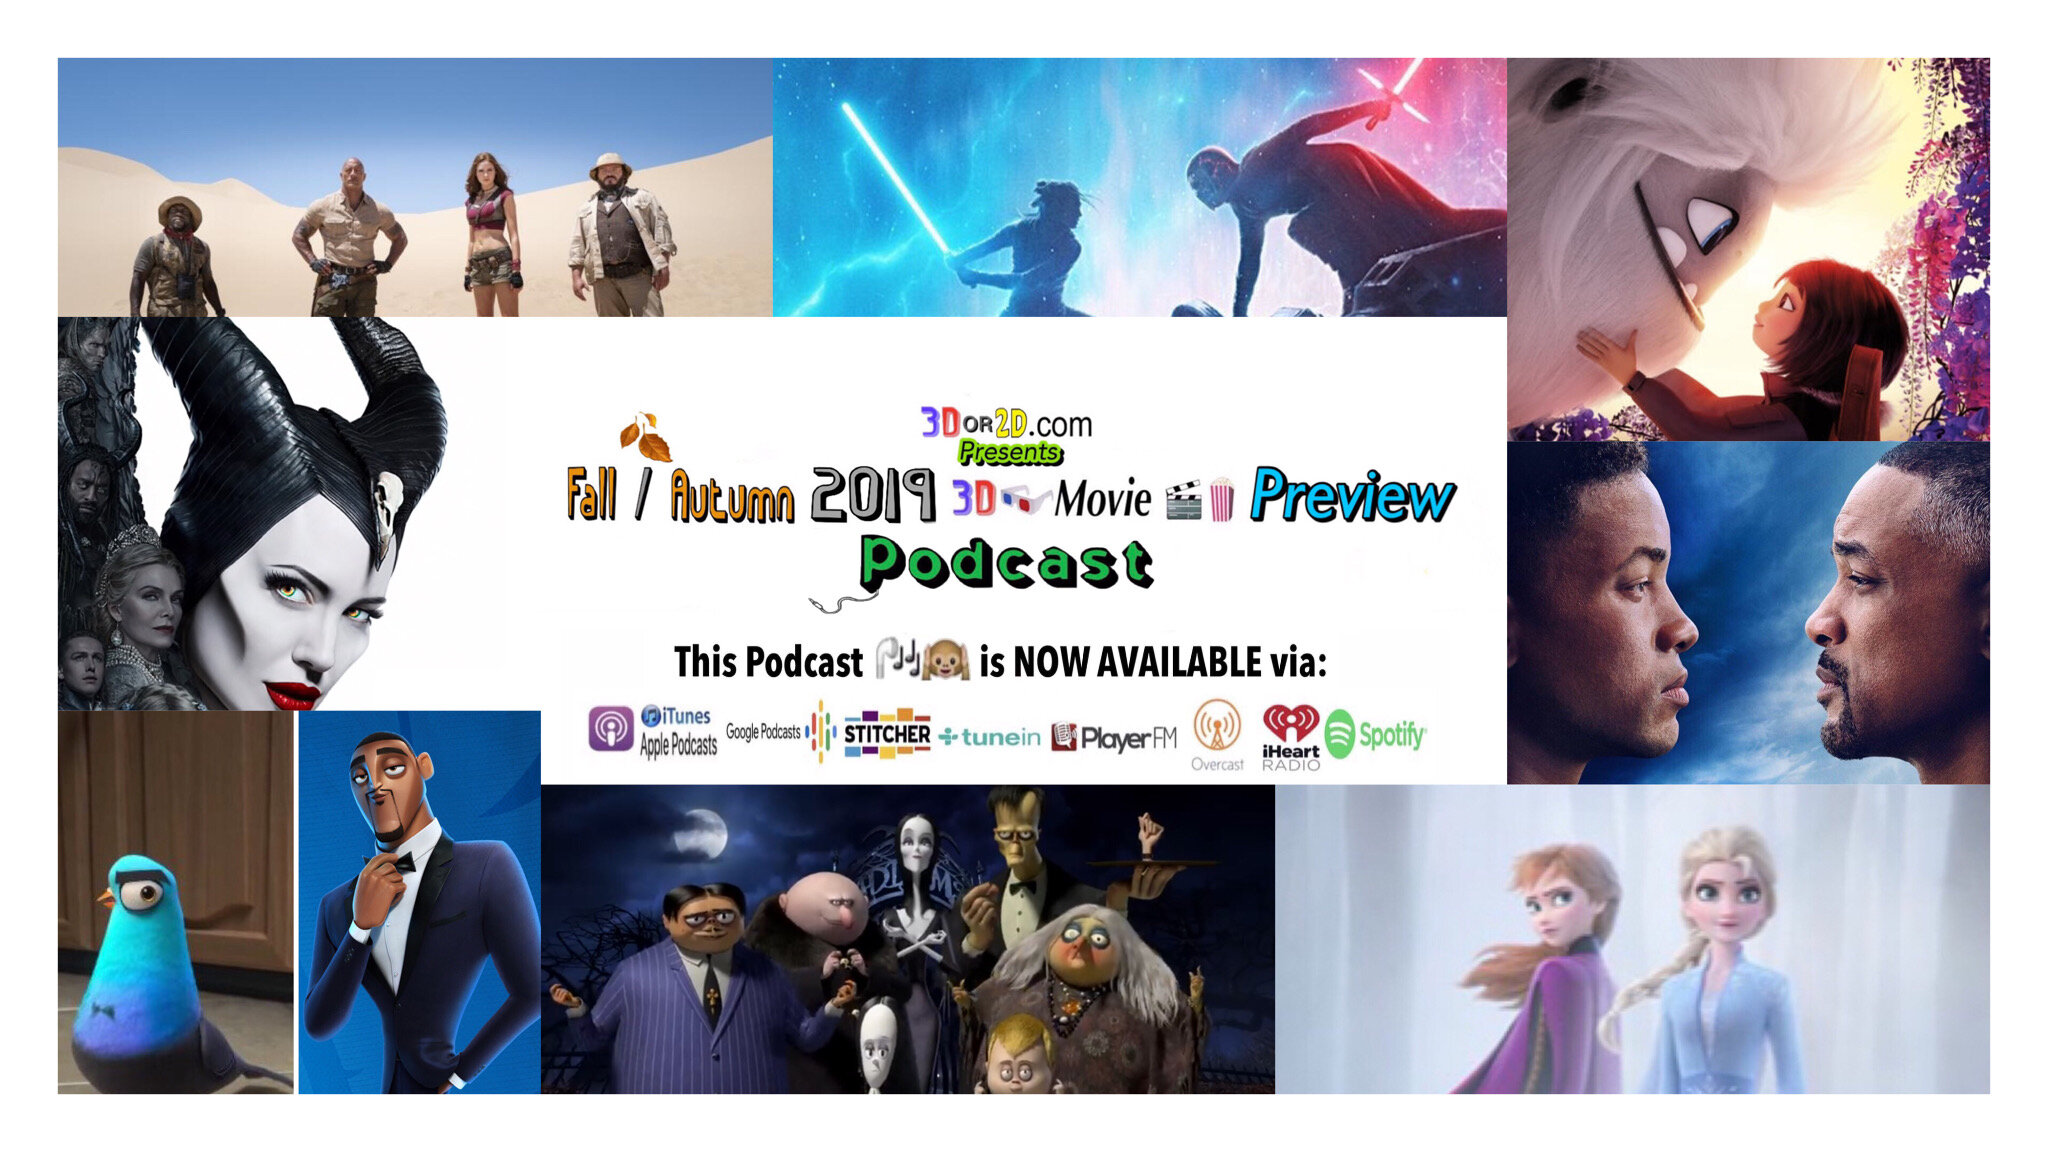 Fall-Autumn-2019-3D-Movie-Preview-podcast.JPG